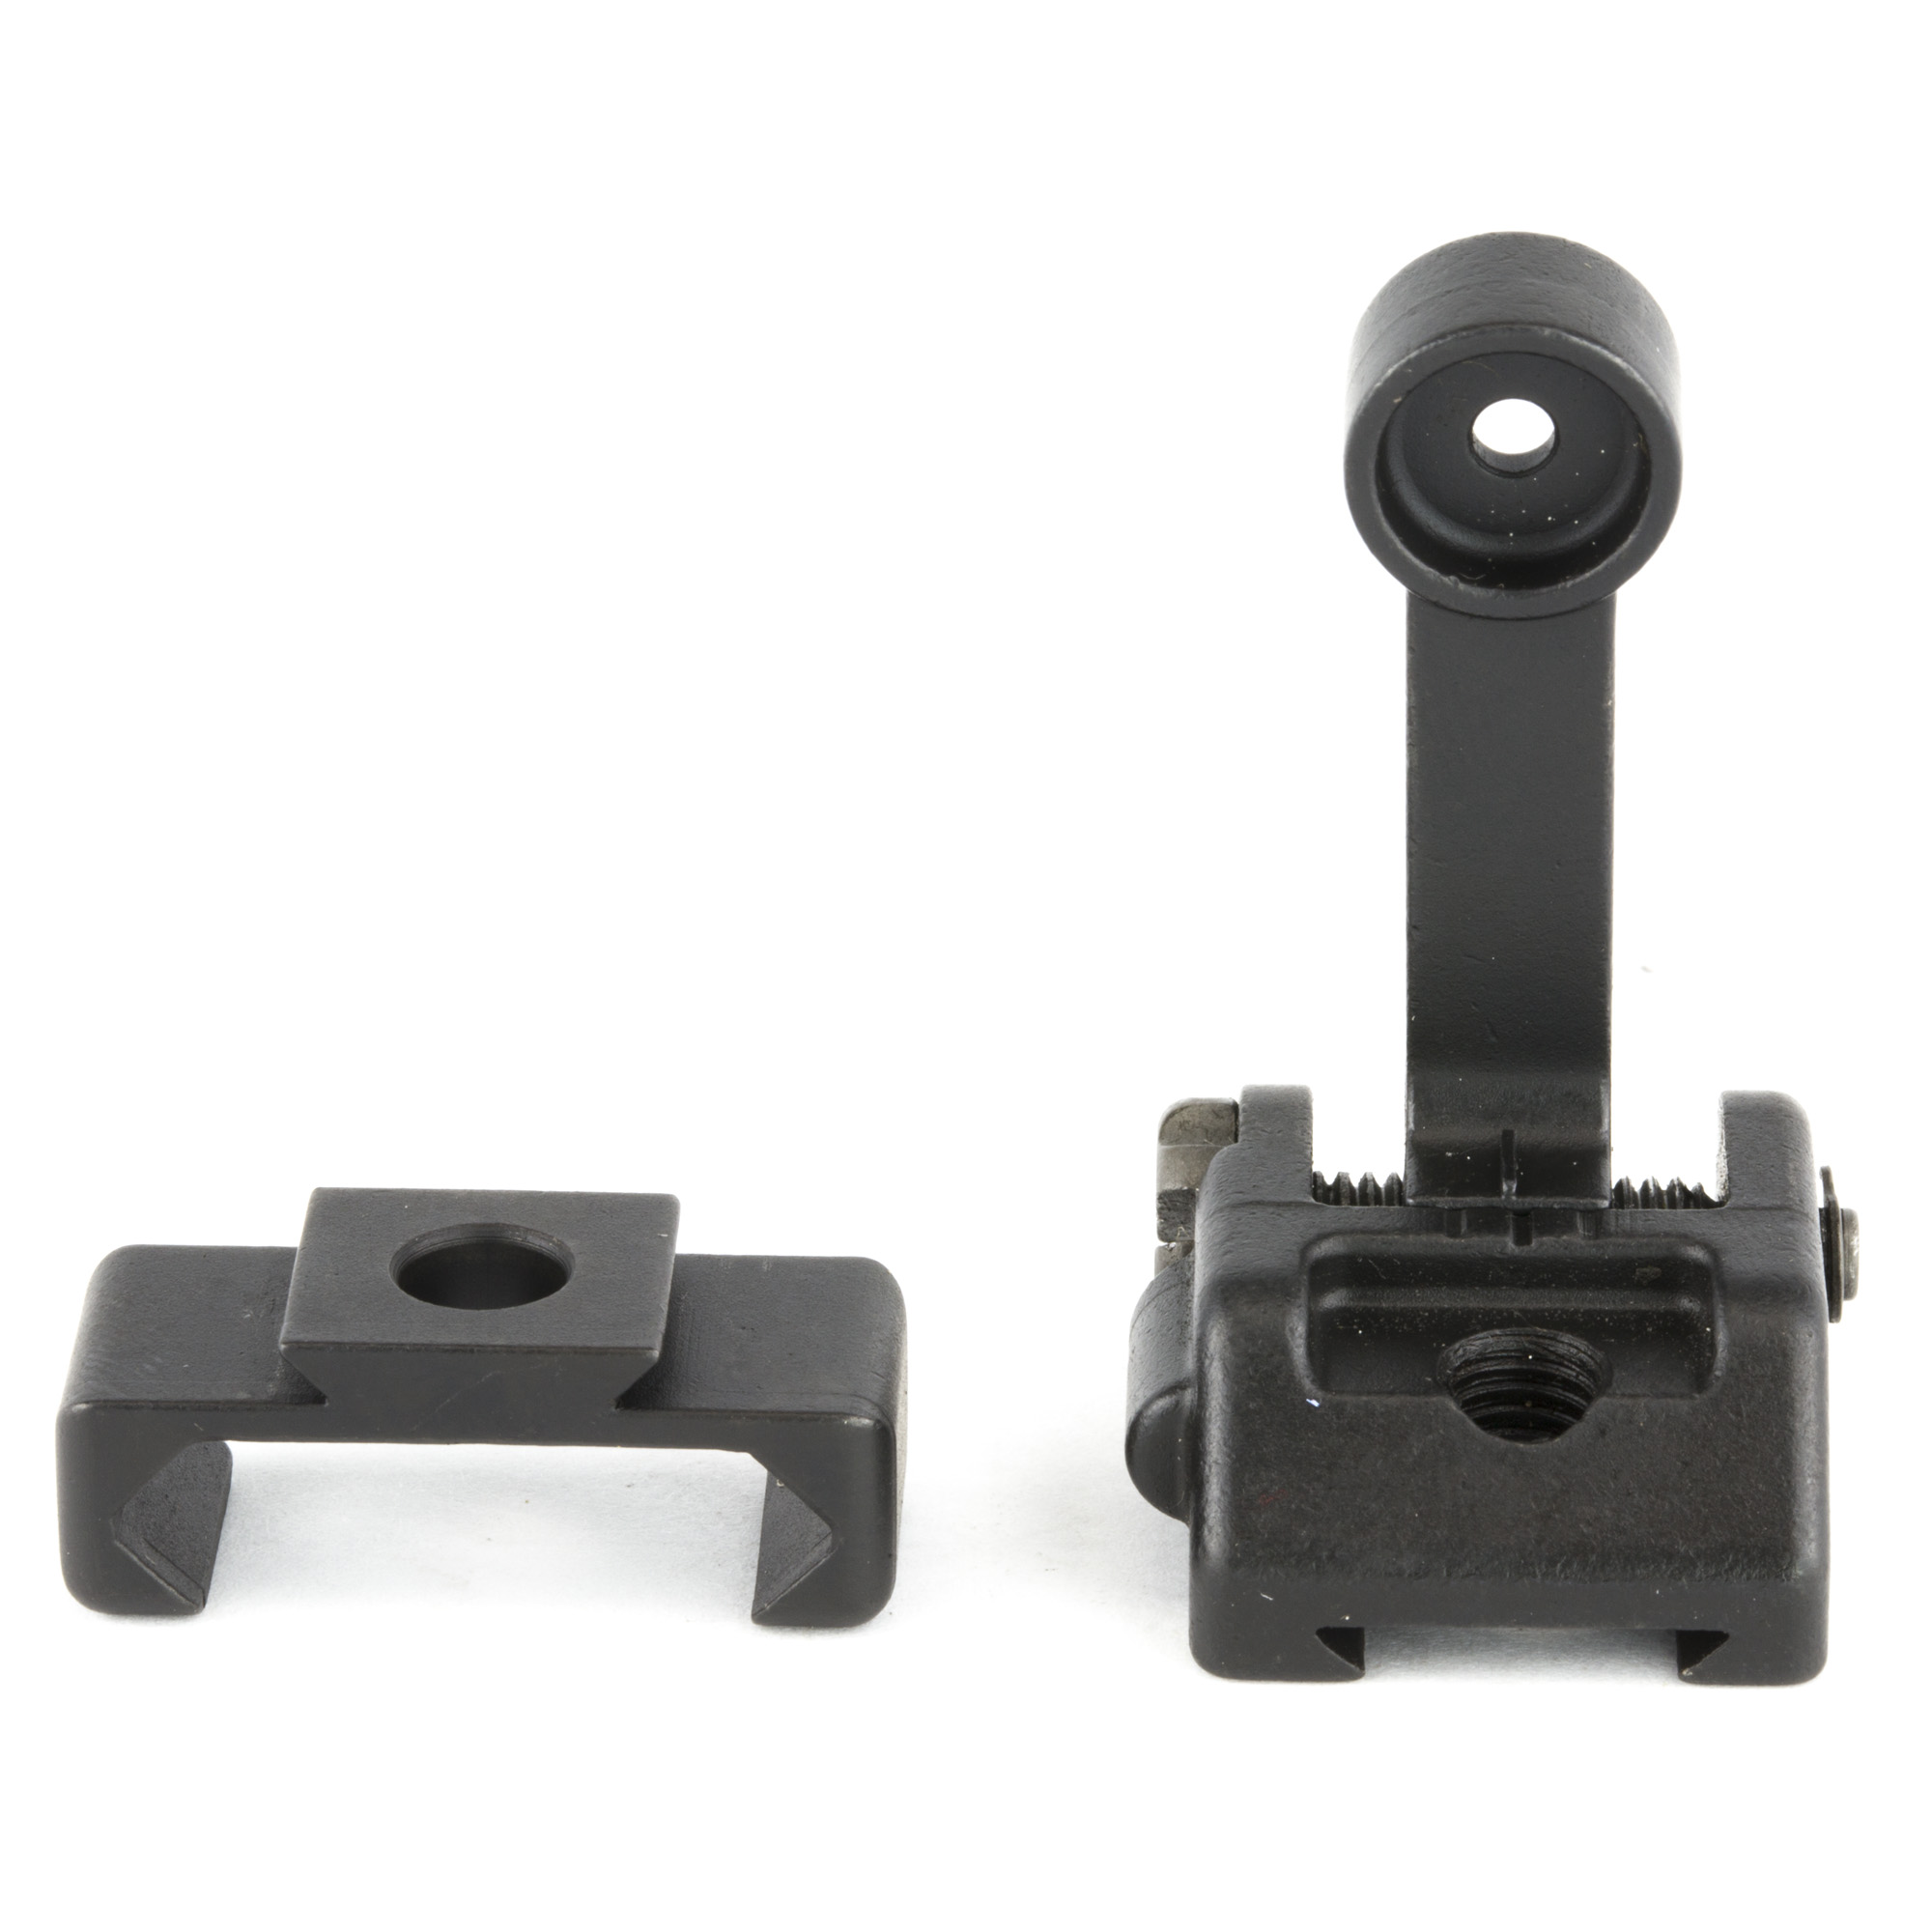 """M2 Sight Rear- Griffin armament is proud to introduce affordable Micro Modular Sights compatible with Picatinny rail systems. Griffin M2 sights offer an industry first"""" patent pending"""" modular base plate system. Constructed from QPQ Treated 17-4 and ordnance grade steel"""" Griffin M2 Sights were designed to be the correct product for every backup sight application. A shooter can use these durable"""" low profile sights in a 12 o'clock mounted application while having the flexibility to reconfigure them to ambidextrous 45 degree angle sights using the alternate and available angle plates. This flexibility ensures these sights can be used by anyone and will never end up in a box of undesirable legacy kit. The full M2 deployment kit includes the front and rear sight assemblies as well as both vertical and angled bases for a complete modular system. However"""" sights and bases are available separately for users who wish to buy parts as needed. The front A2 sight provides elevation adjustment while ensuring maximum aftermarket support for your favorite post"""" be it tritium"""" fiber optic"""" match grade"""" or otherwise. An extremely low profile"""" snag resistant"""" slotted rear windage screw"""" affords easy but more importantly secure adjustability. Robust spring tension of both front and rear flip up assemblies ensures accurate repeatability every time the sight towers are actuated. Never before has a product in this category offer this degree of flexibility. Griffin M2 Sights have a minimal foot print"""" and are among the smallest backup sights on the market. For a mere 2 and half ounces your rifle can be equipped with a durable iron sight system"""" to provide aiming capability in rain"""" snow"""" or fog"""" on or off axis without dependence on batteries or glass."""